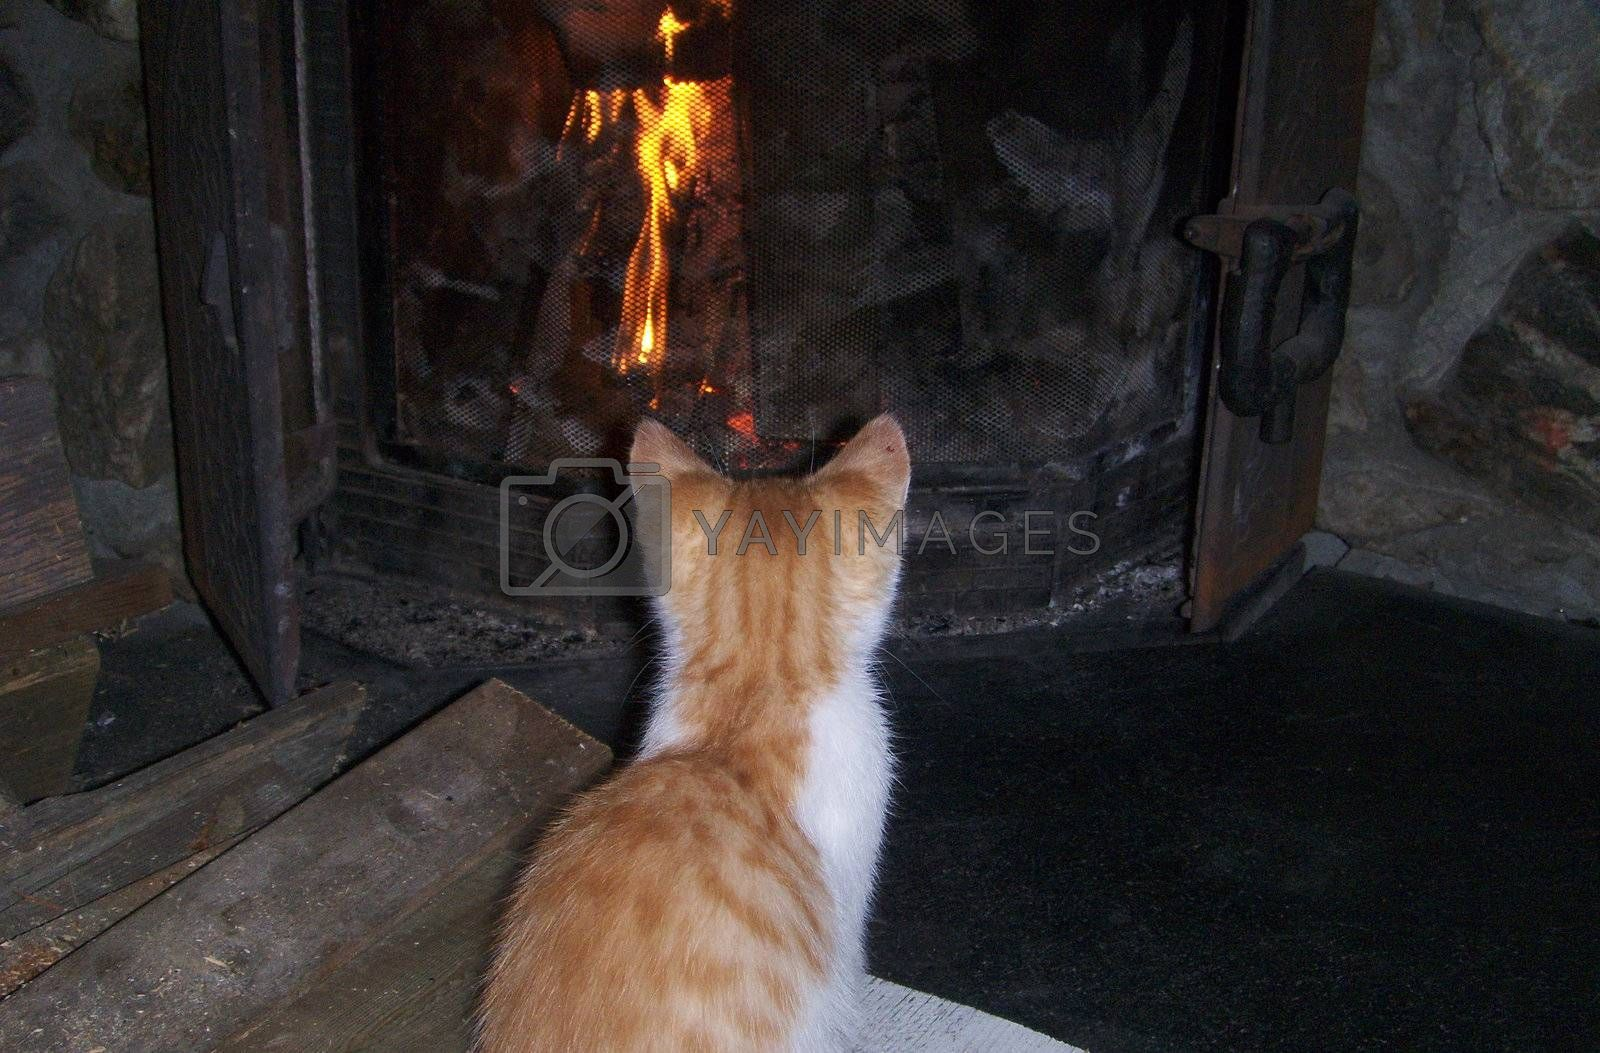 Kitten sitting in front of a fireplace